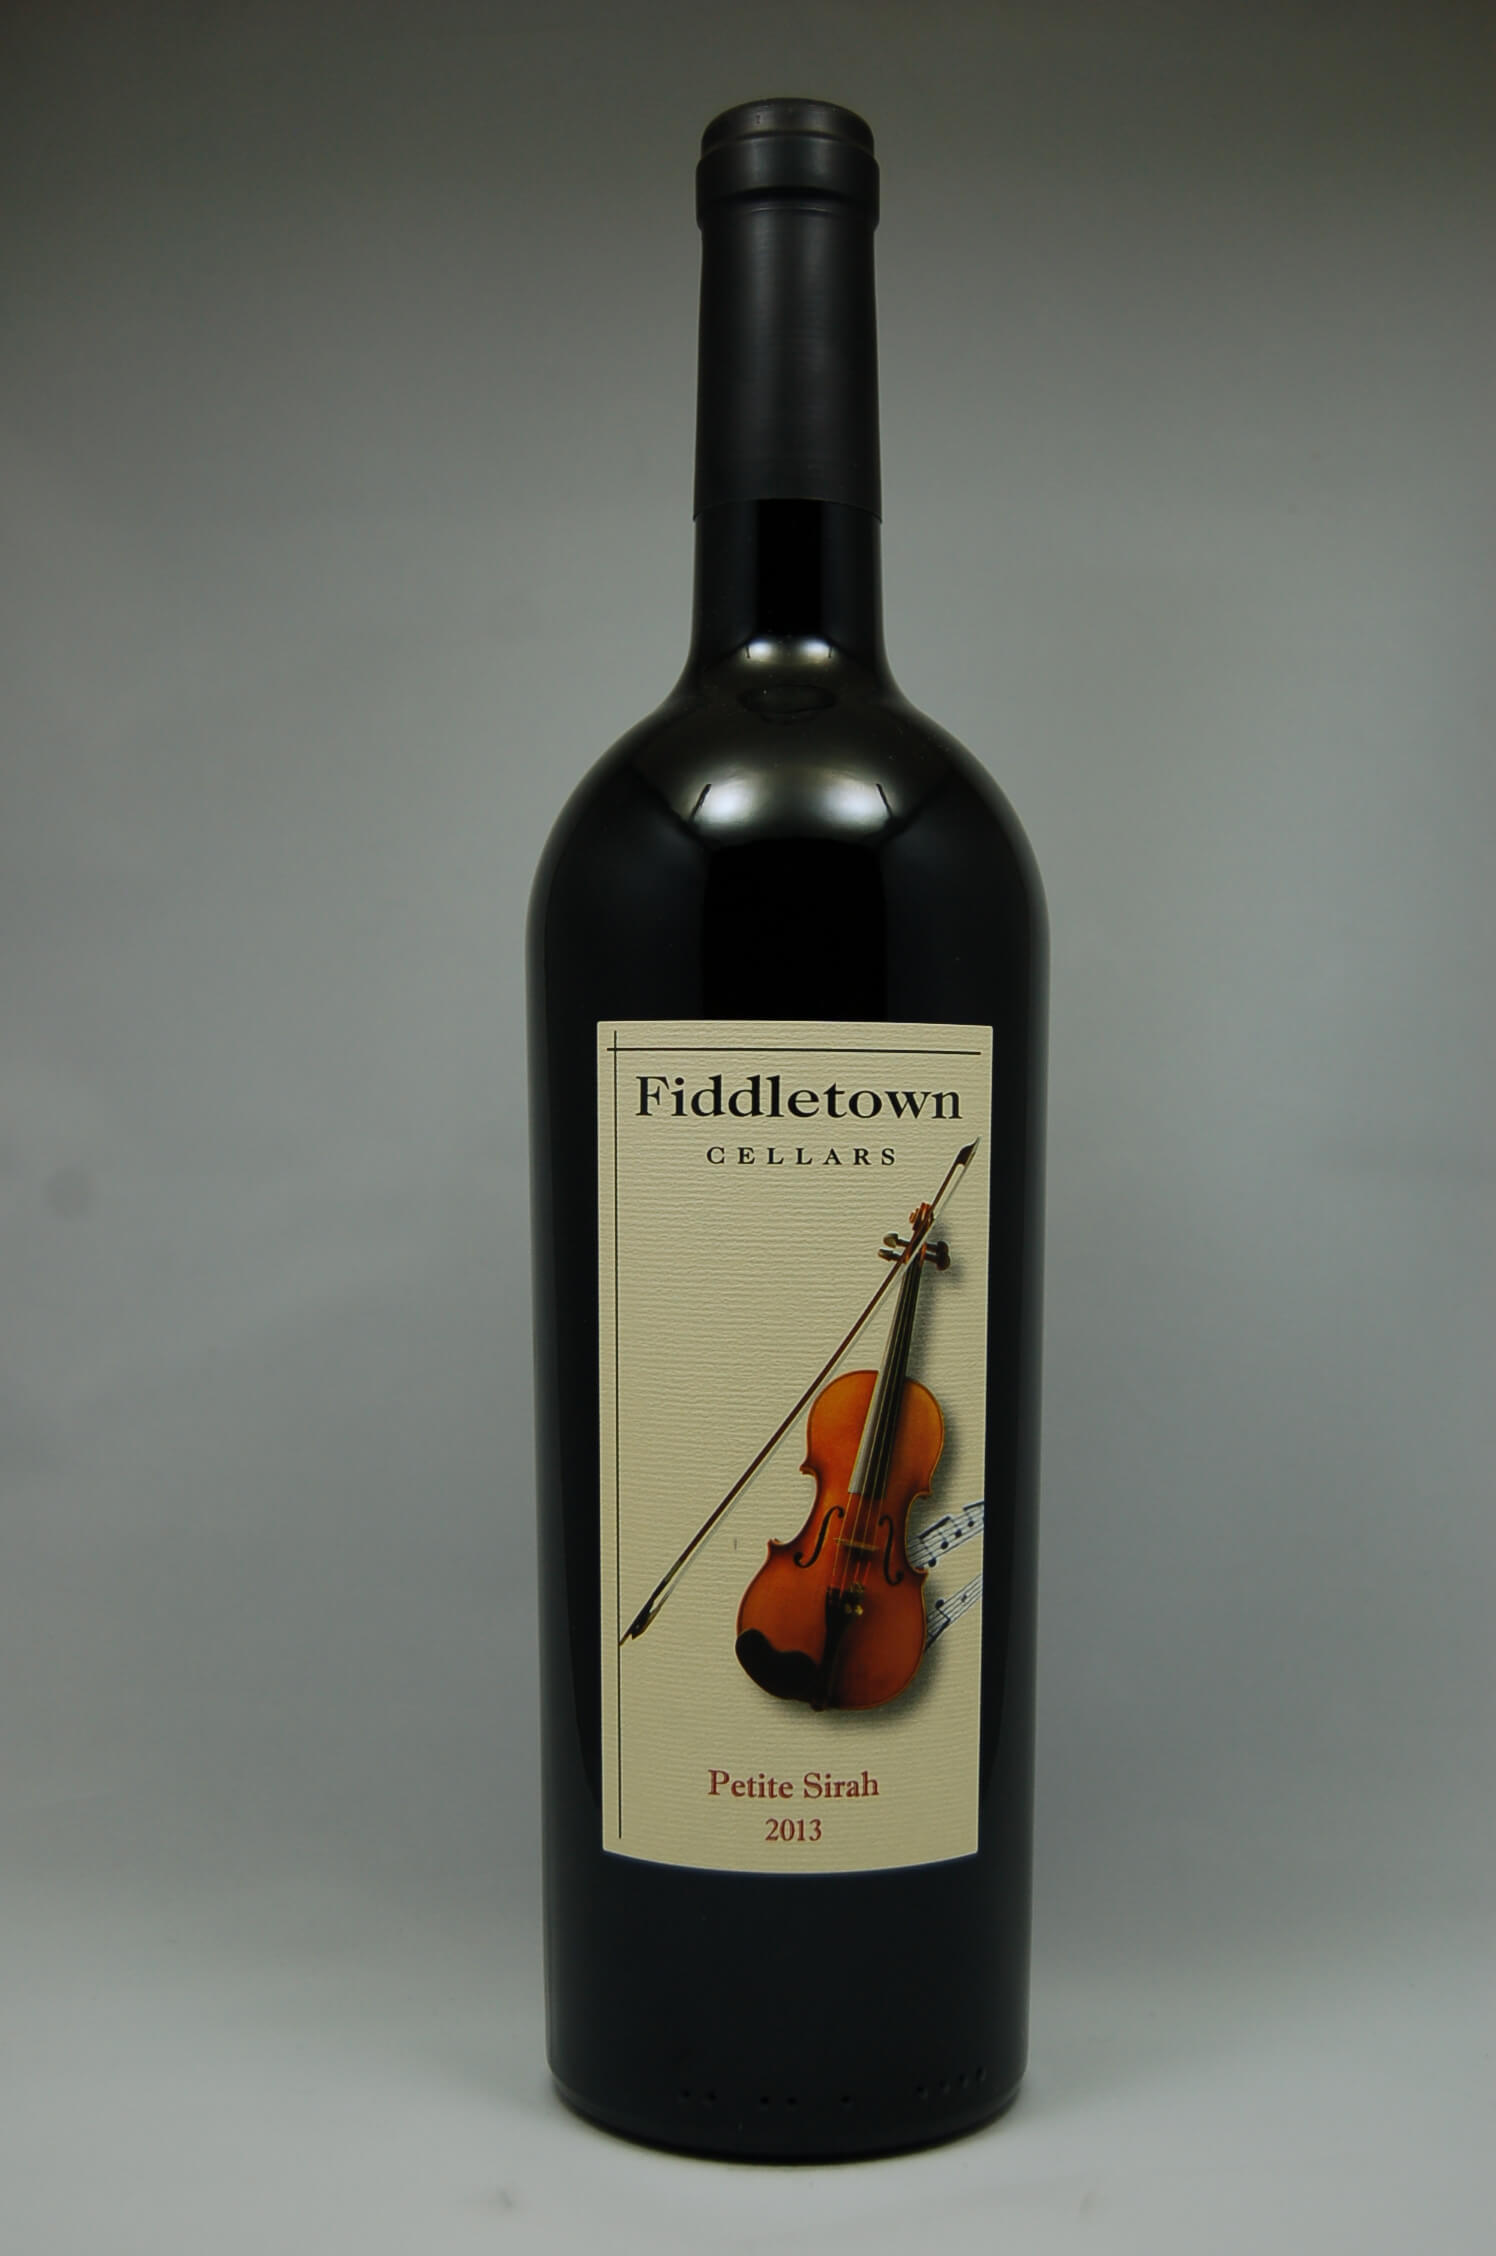 Fiddletown Cellars Petite Sirah 2013